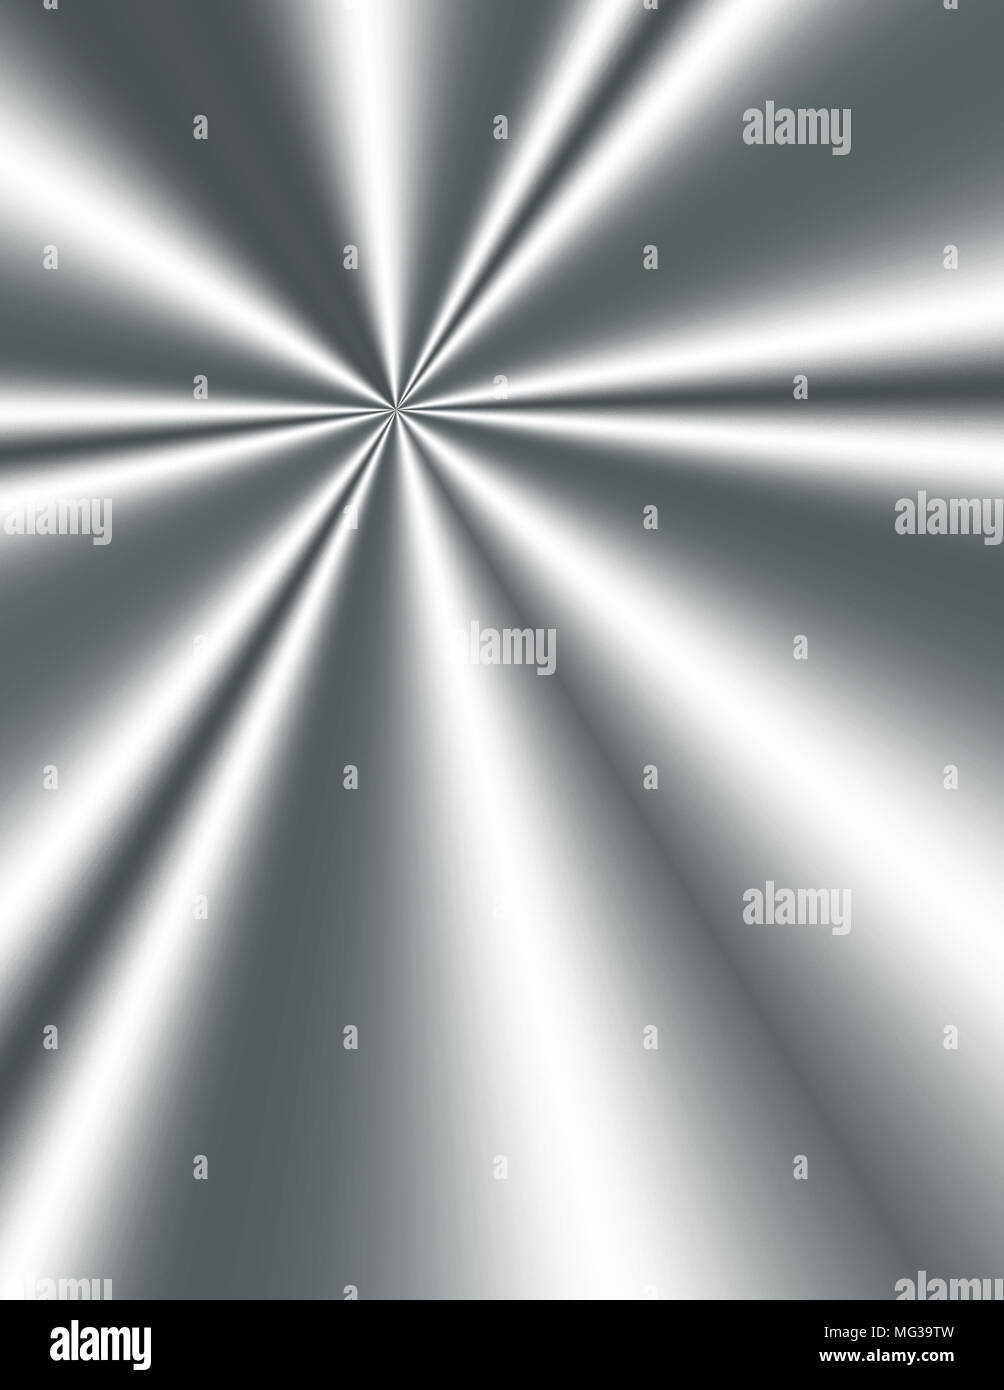 Ray of light reflected on metal plate - Stock Image